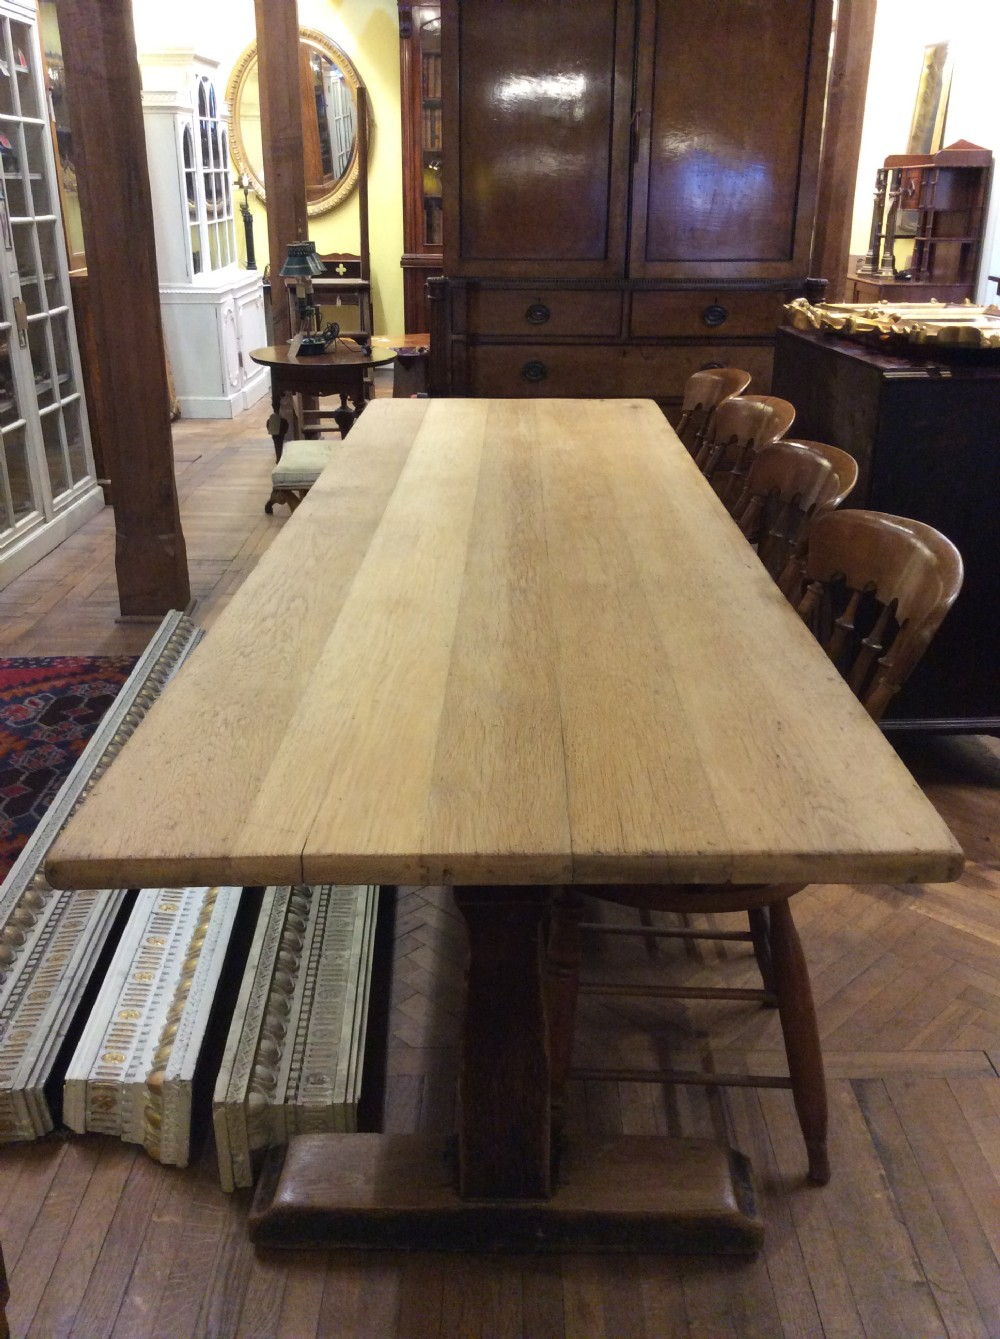 an early 20thc 10 seater oak refectory table